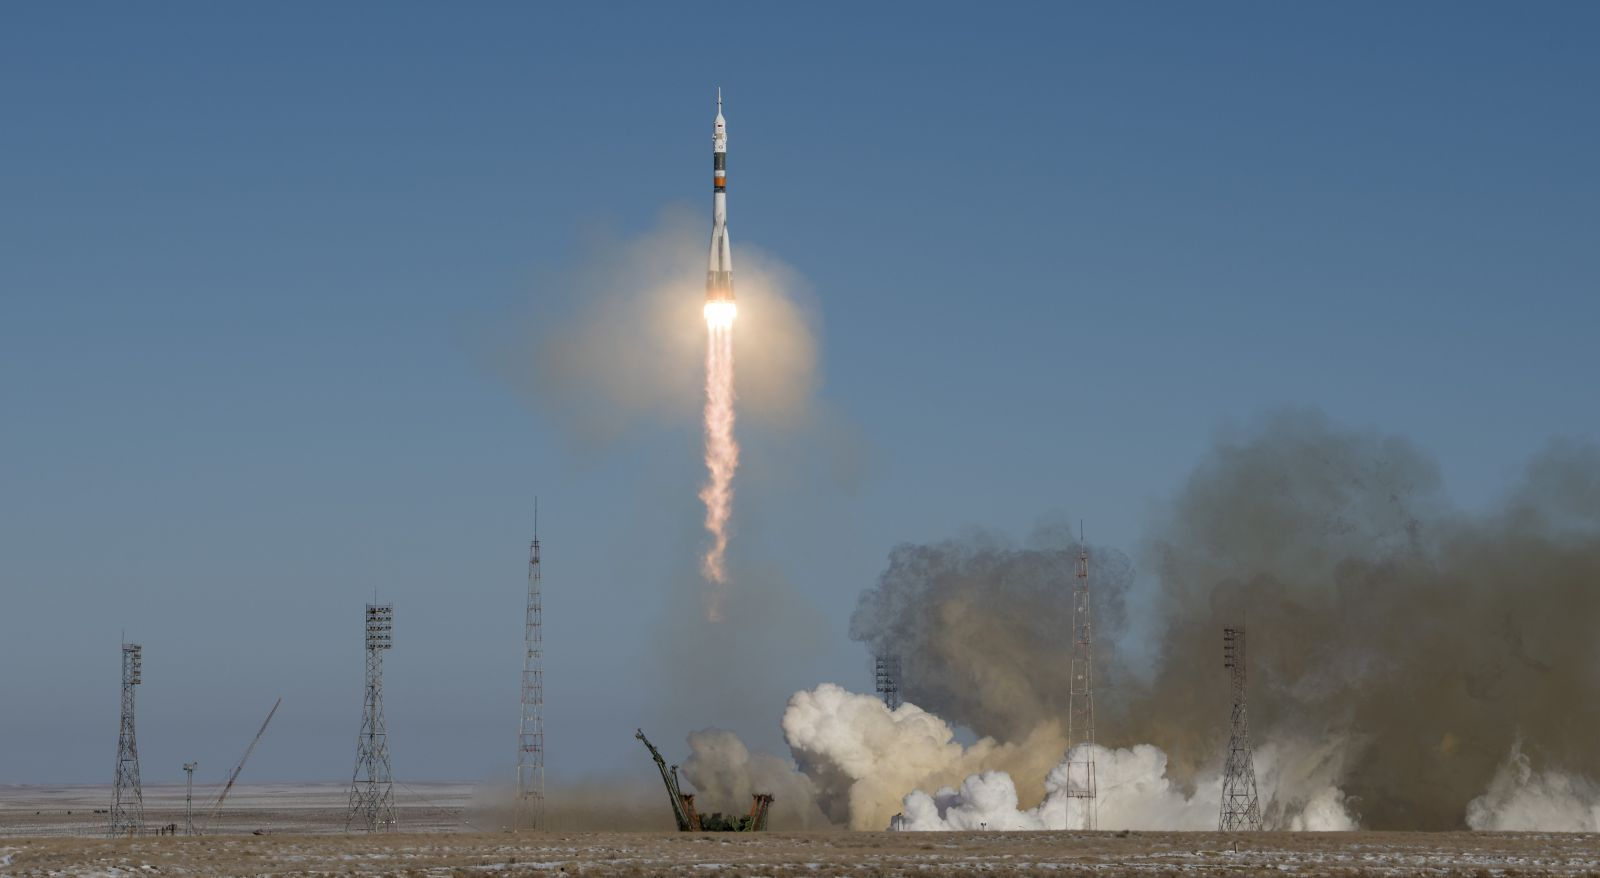 3 astronauts blast off for International Space Station